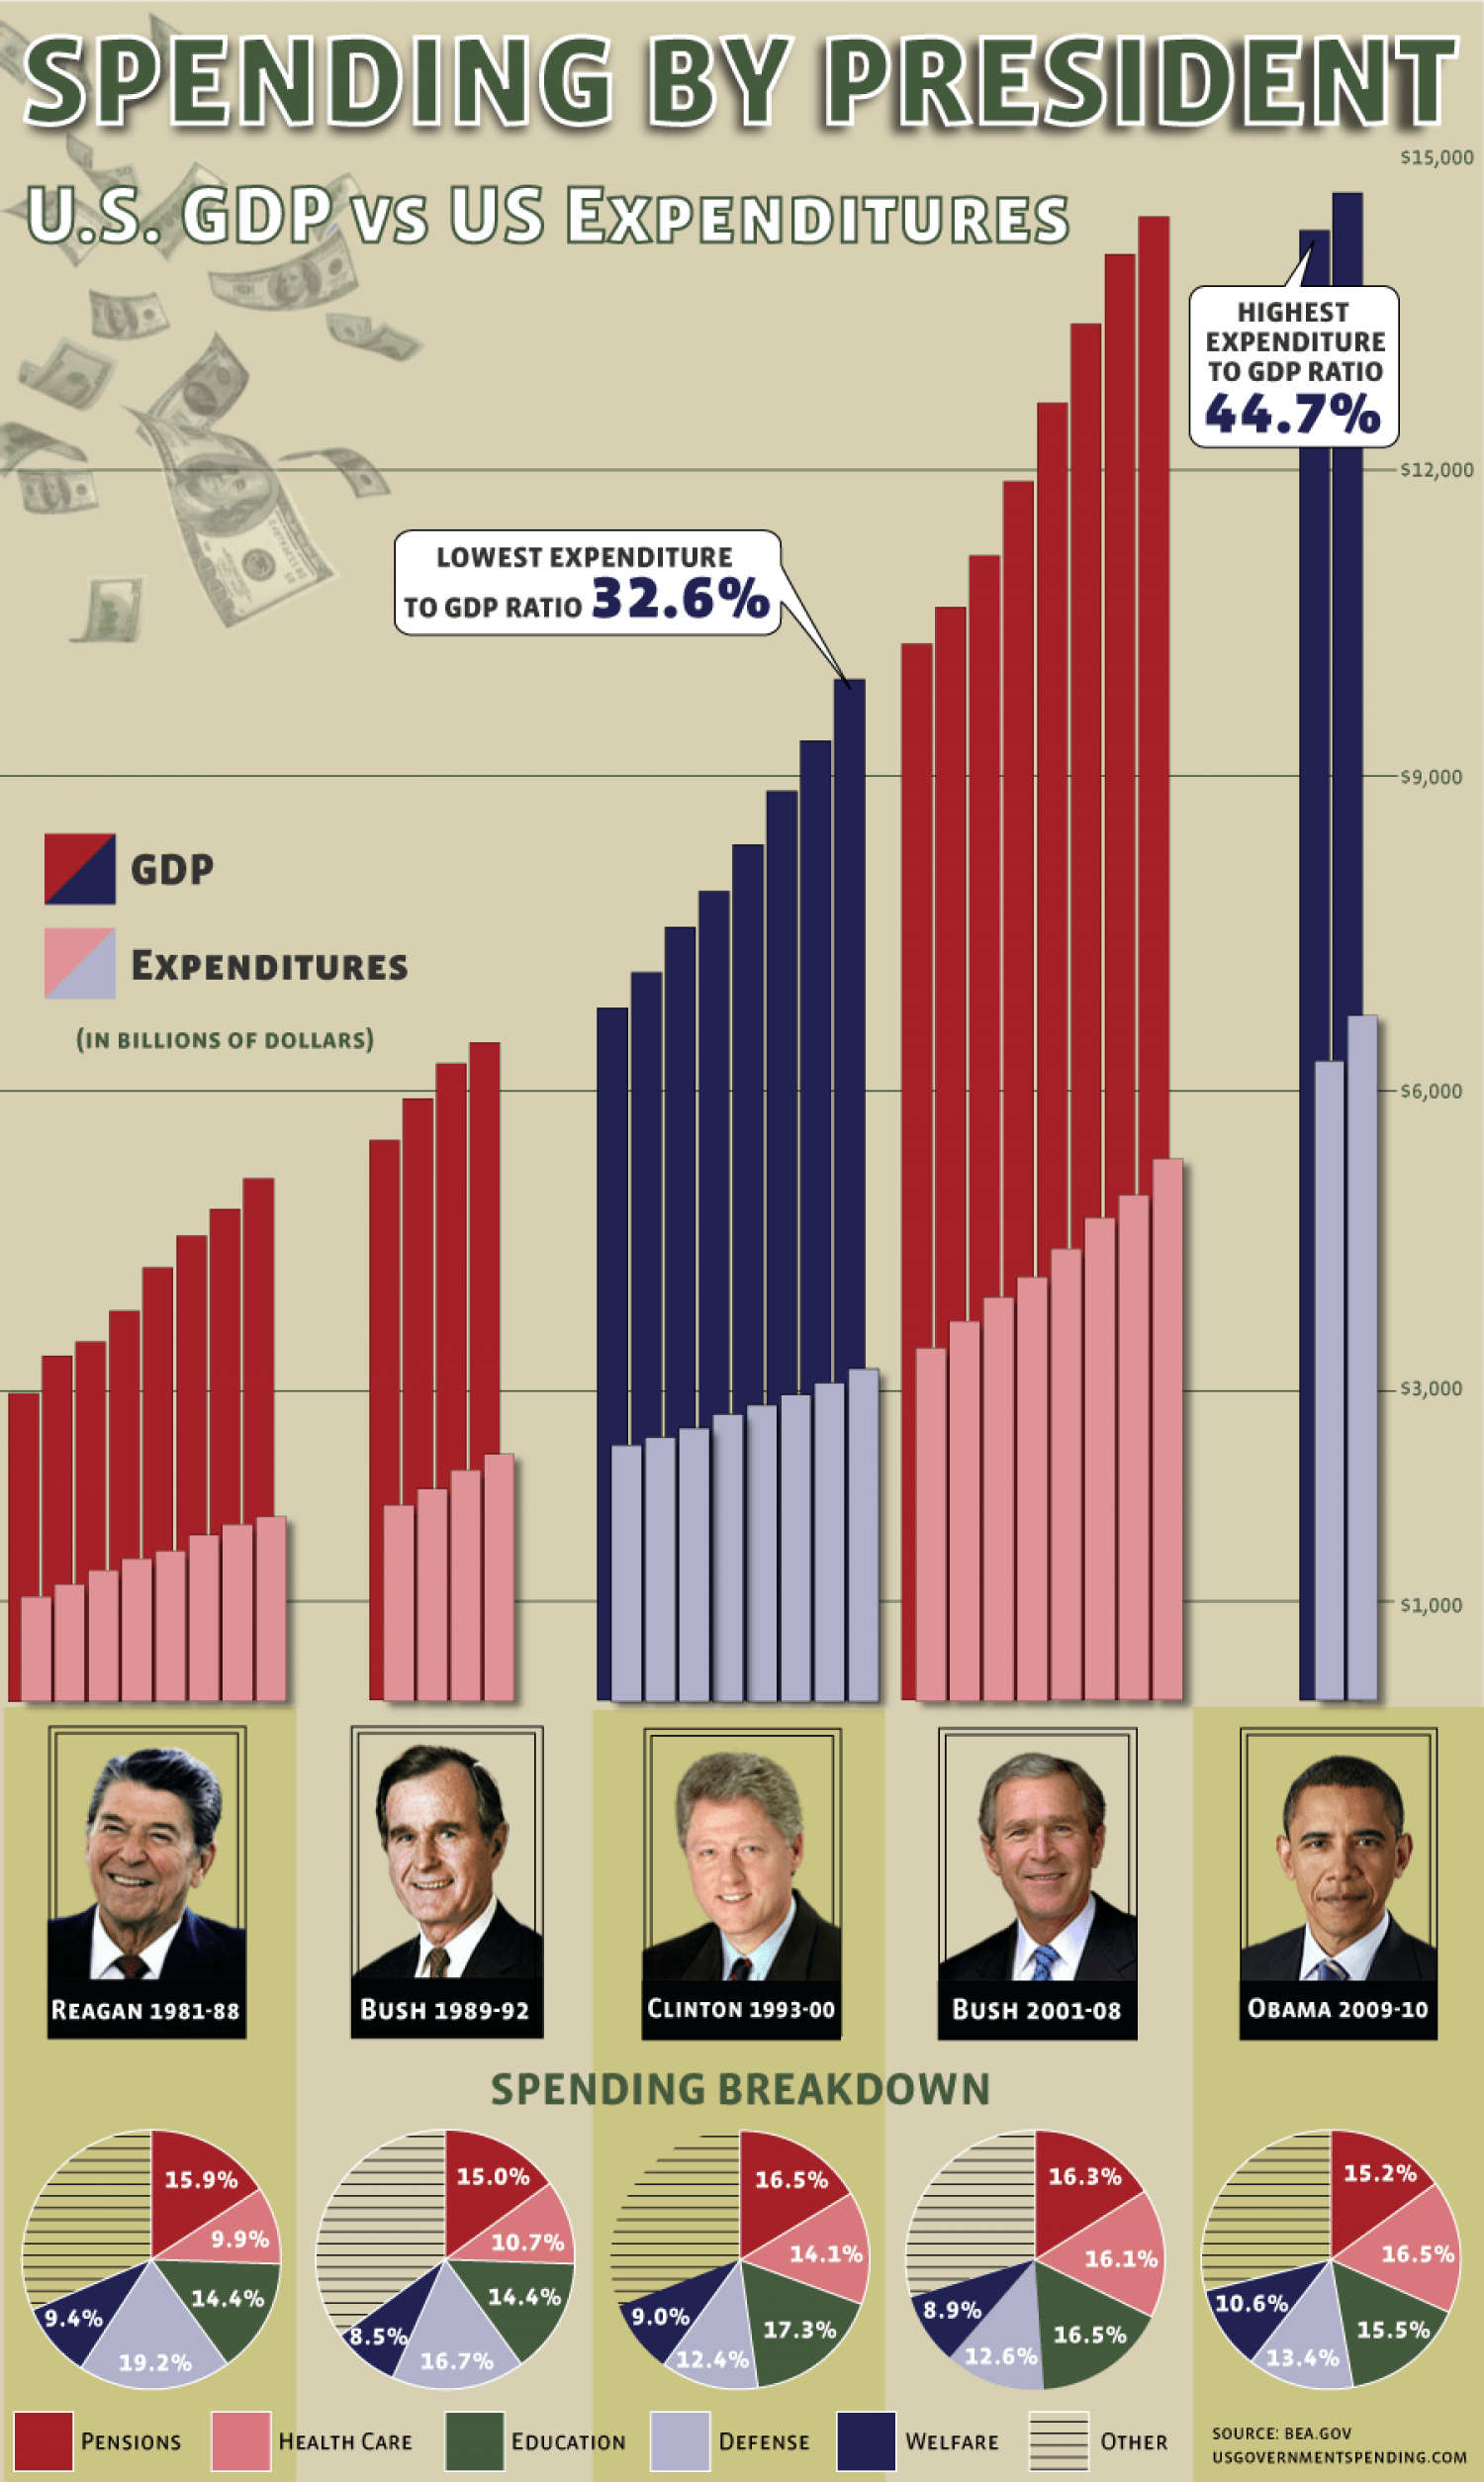 Presidential Spending Expenditures By Year